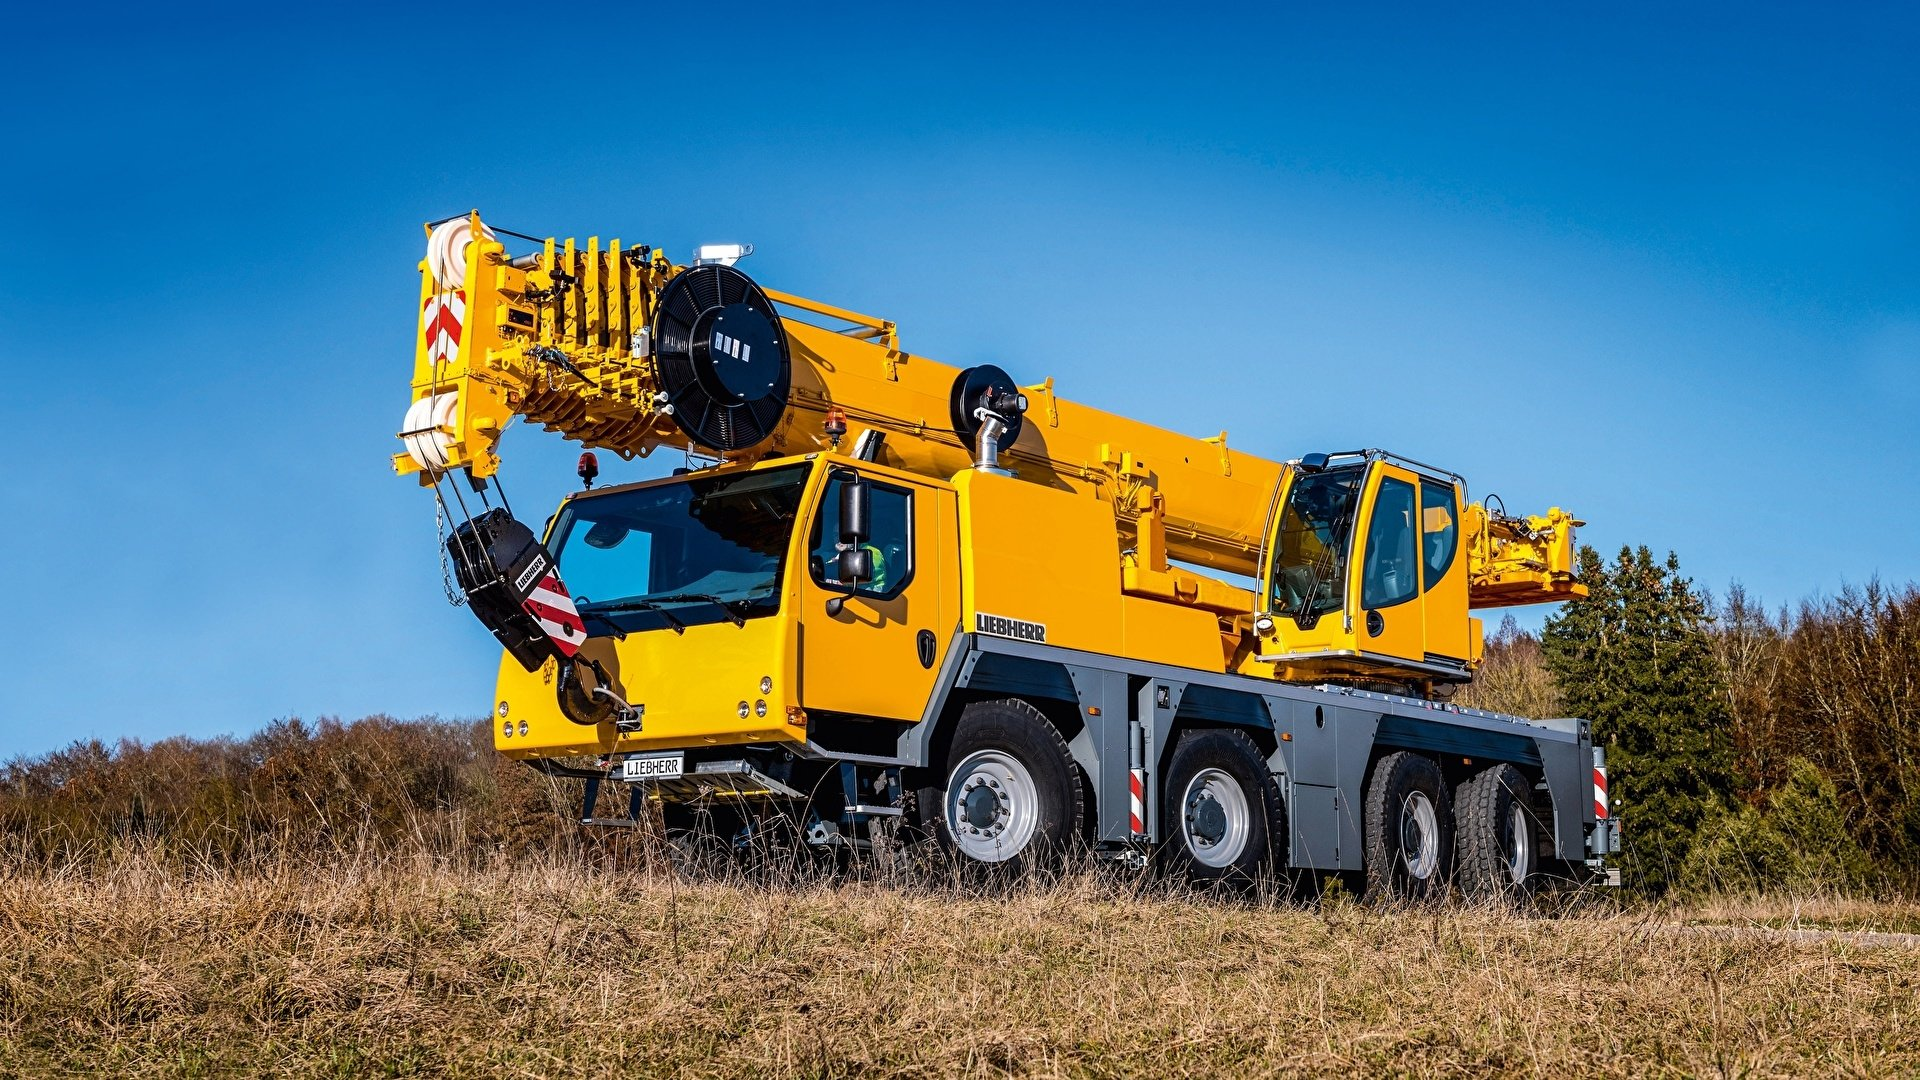 Vehicles - Liebherr  Construction Vehicle Crane Wallpaper